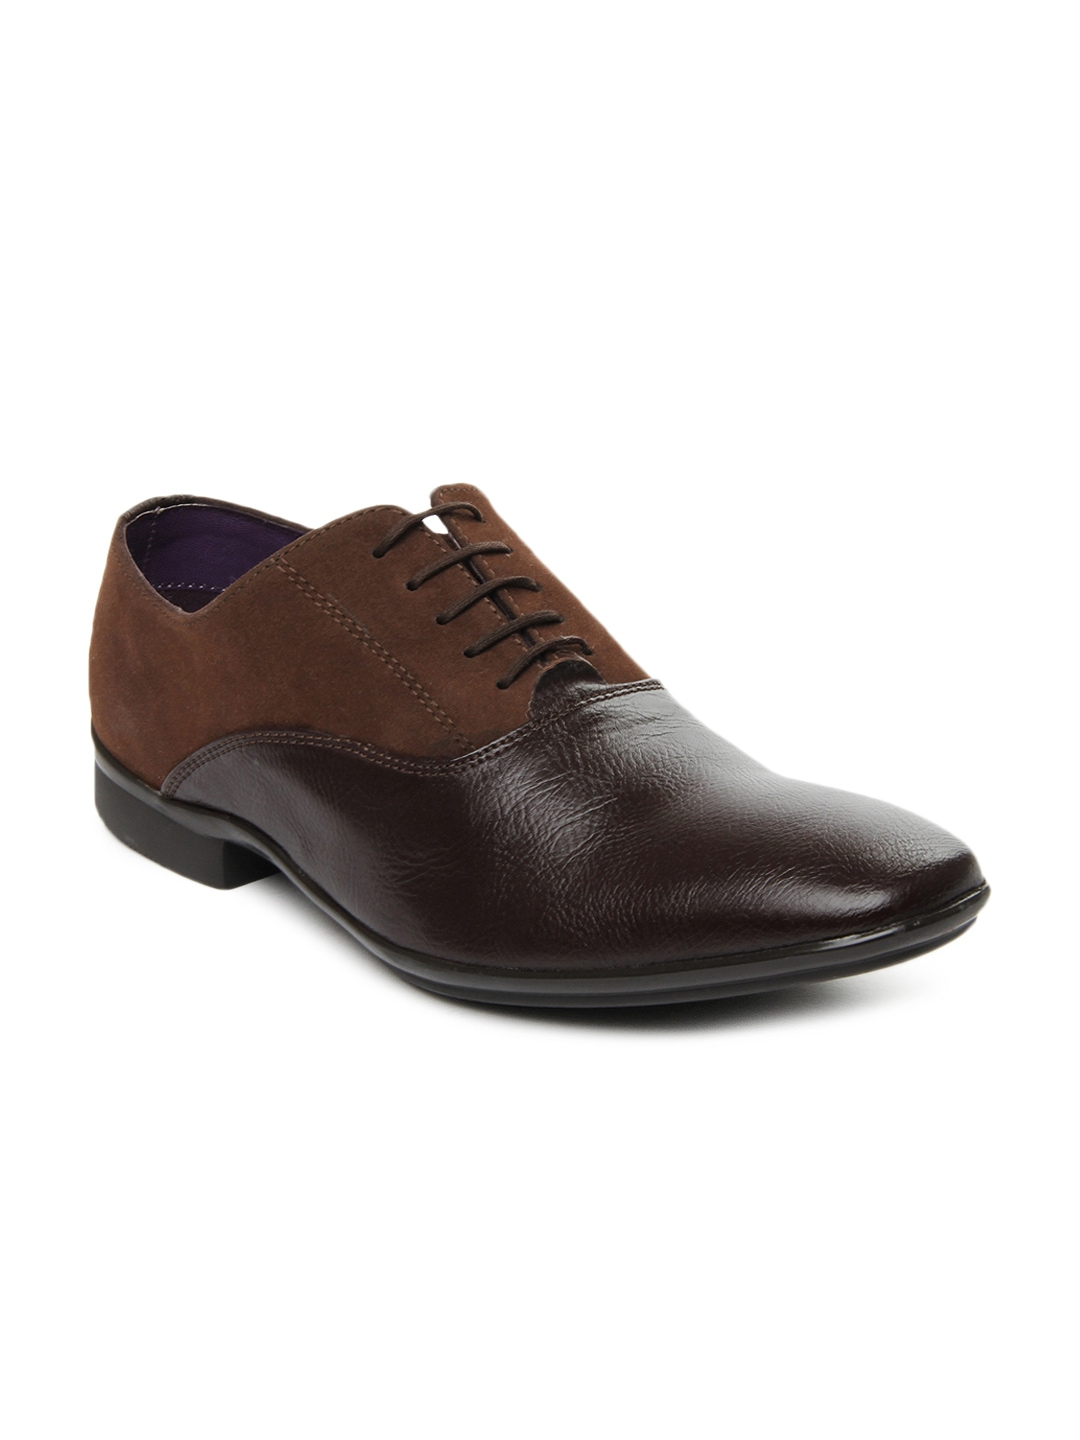 myntra knotty derby brown semi formal shoes 262993